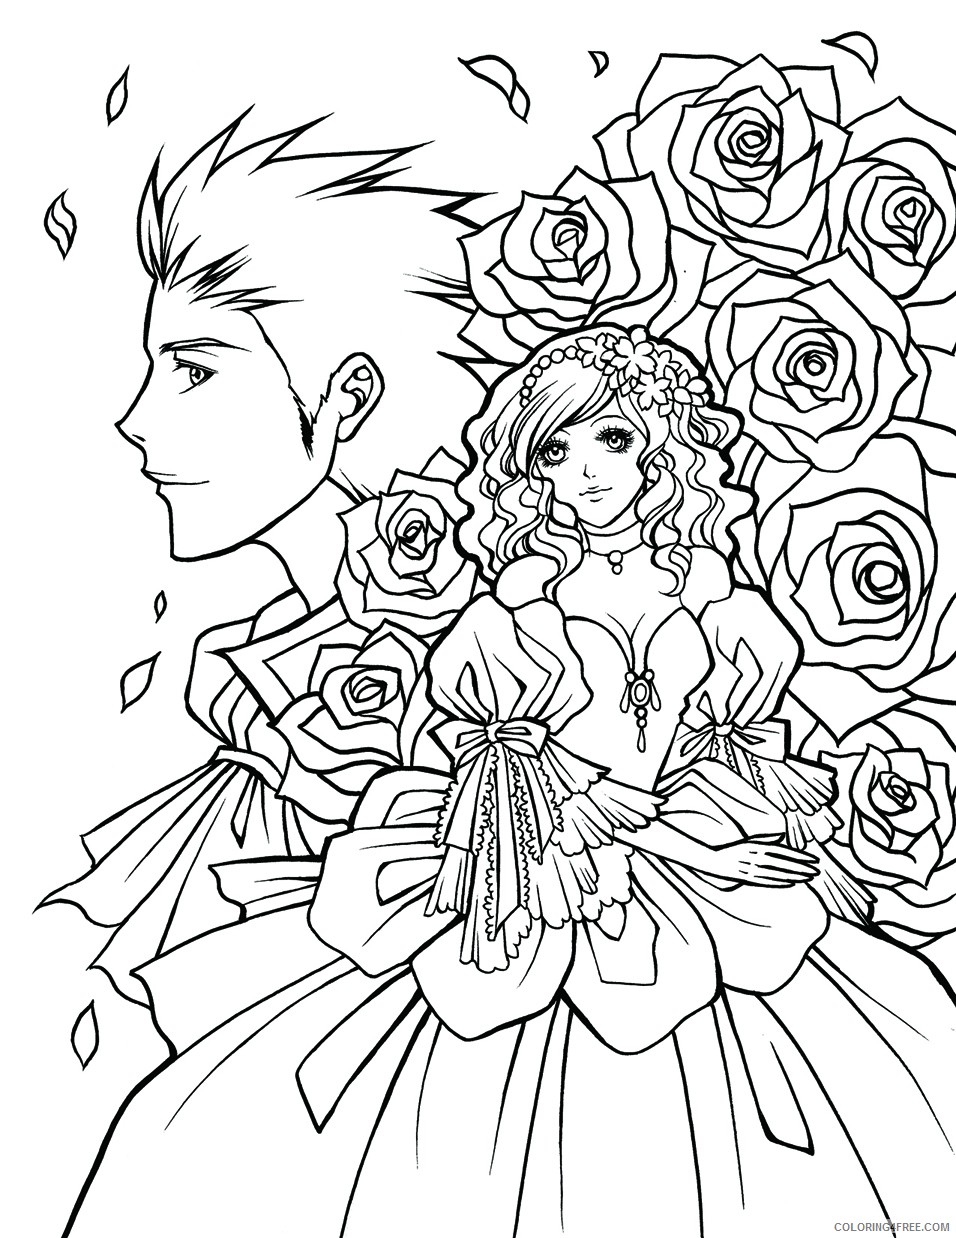 manga coloring pages for adults Coloring4free